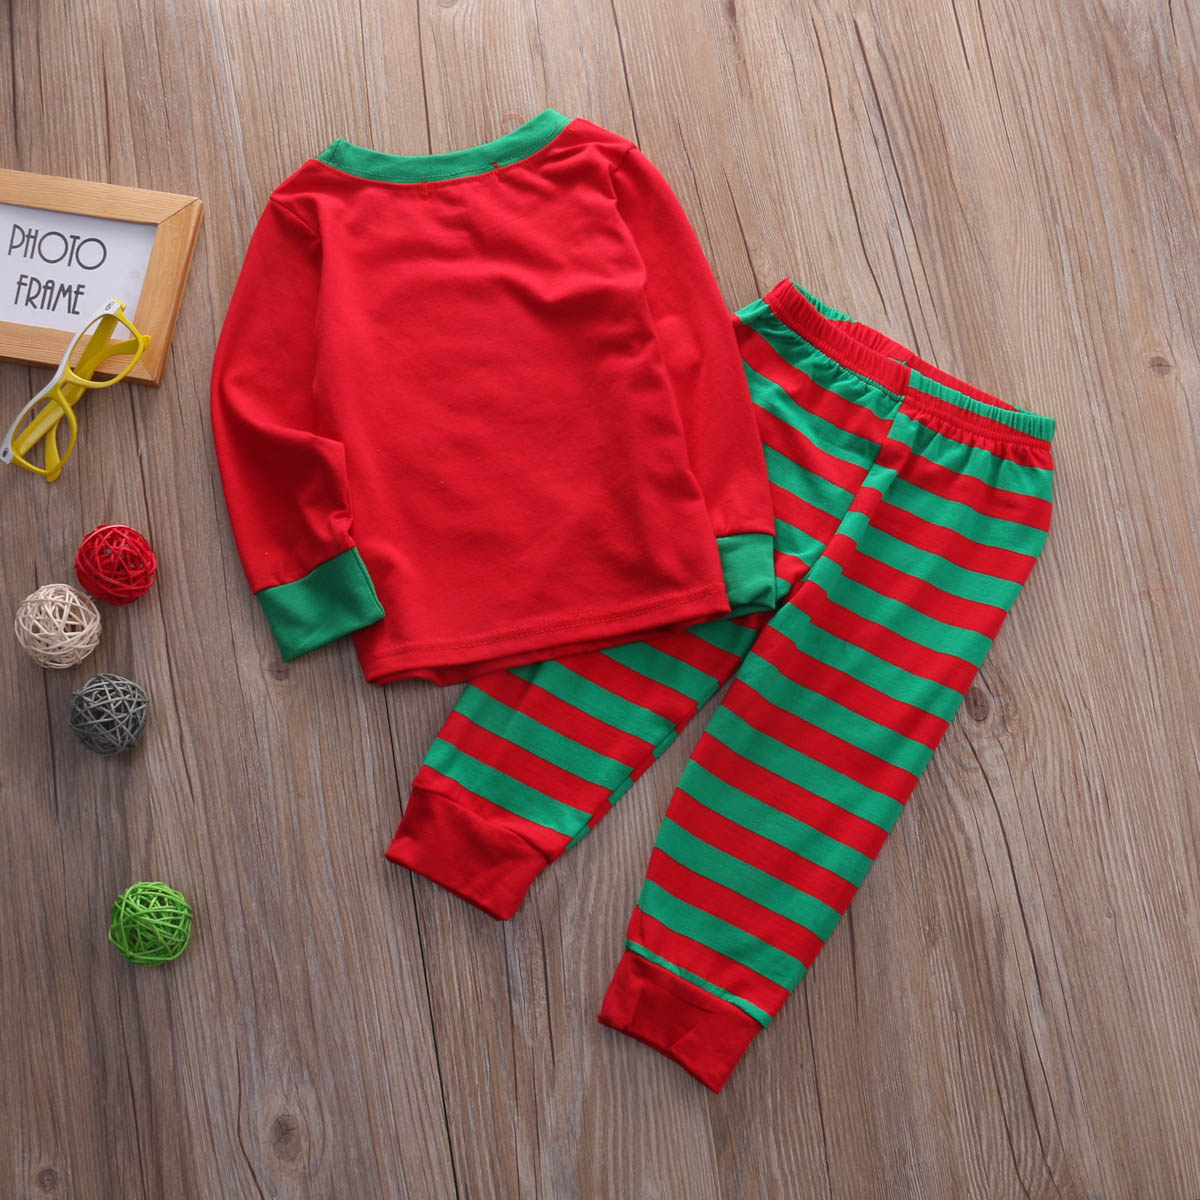 91c76fdebd 2Pcs Baby Kids Christmas Pjs Clothing Set Baby Boys Girls Xmas T Shirt Tops  + Pants Kids Toddler Clothes Outfit-in Clothing Sets from Mother   Kids on  ...